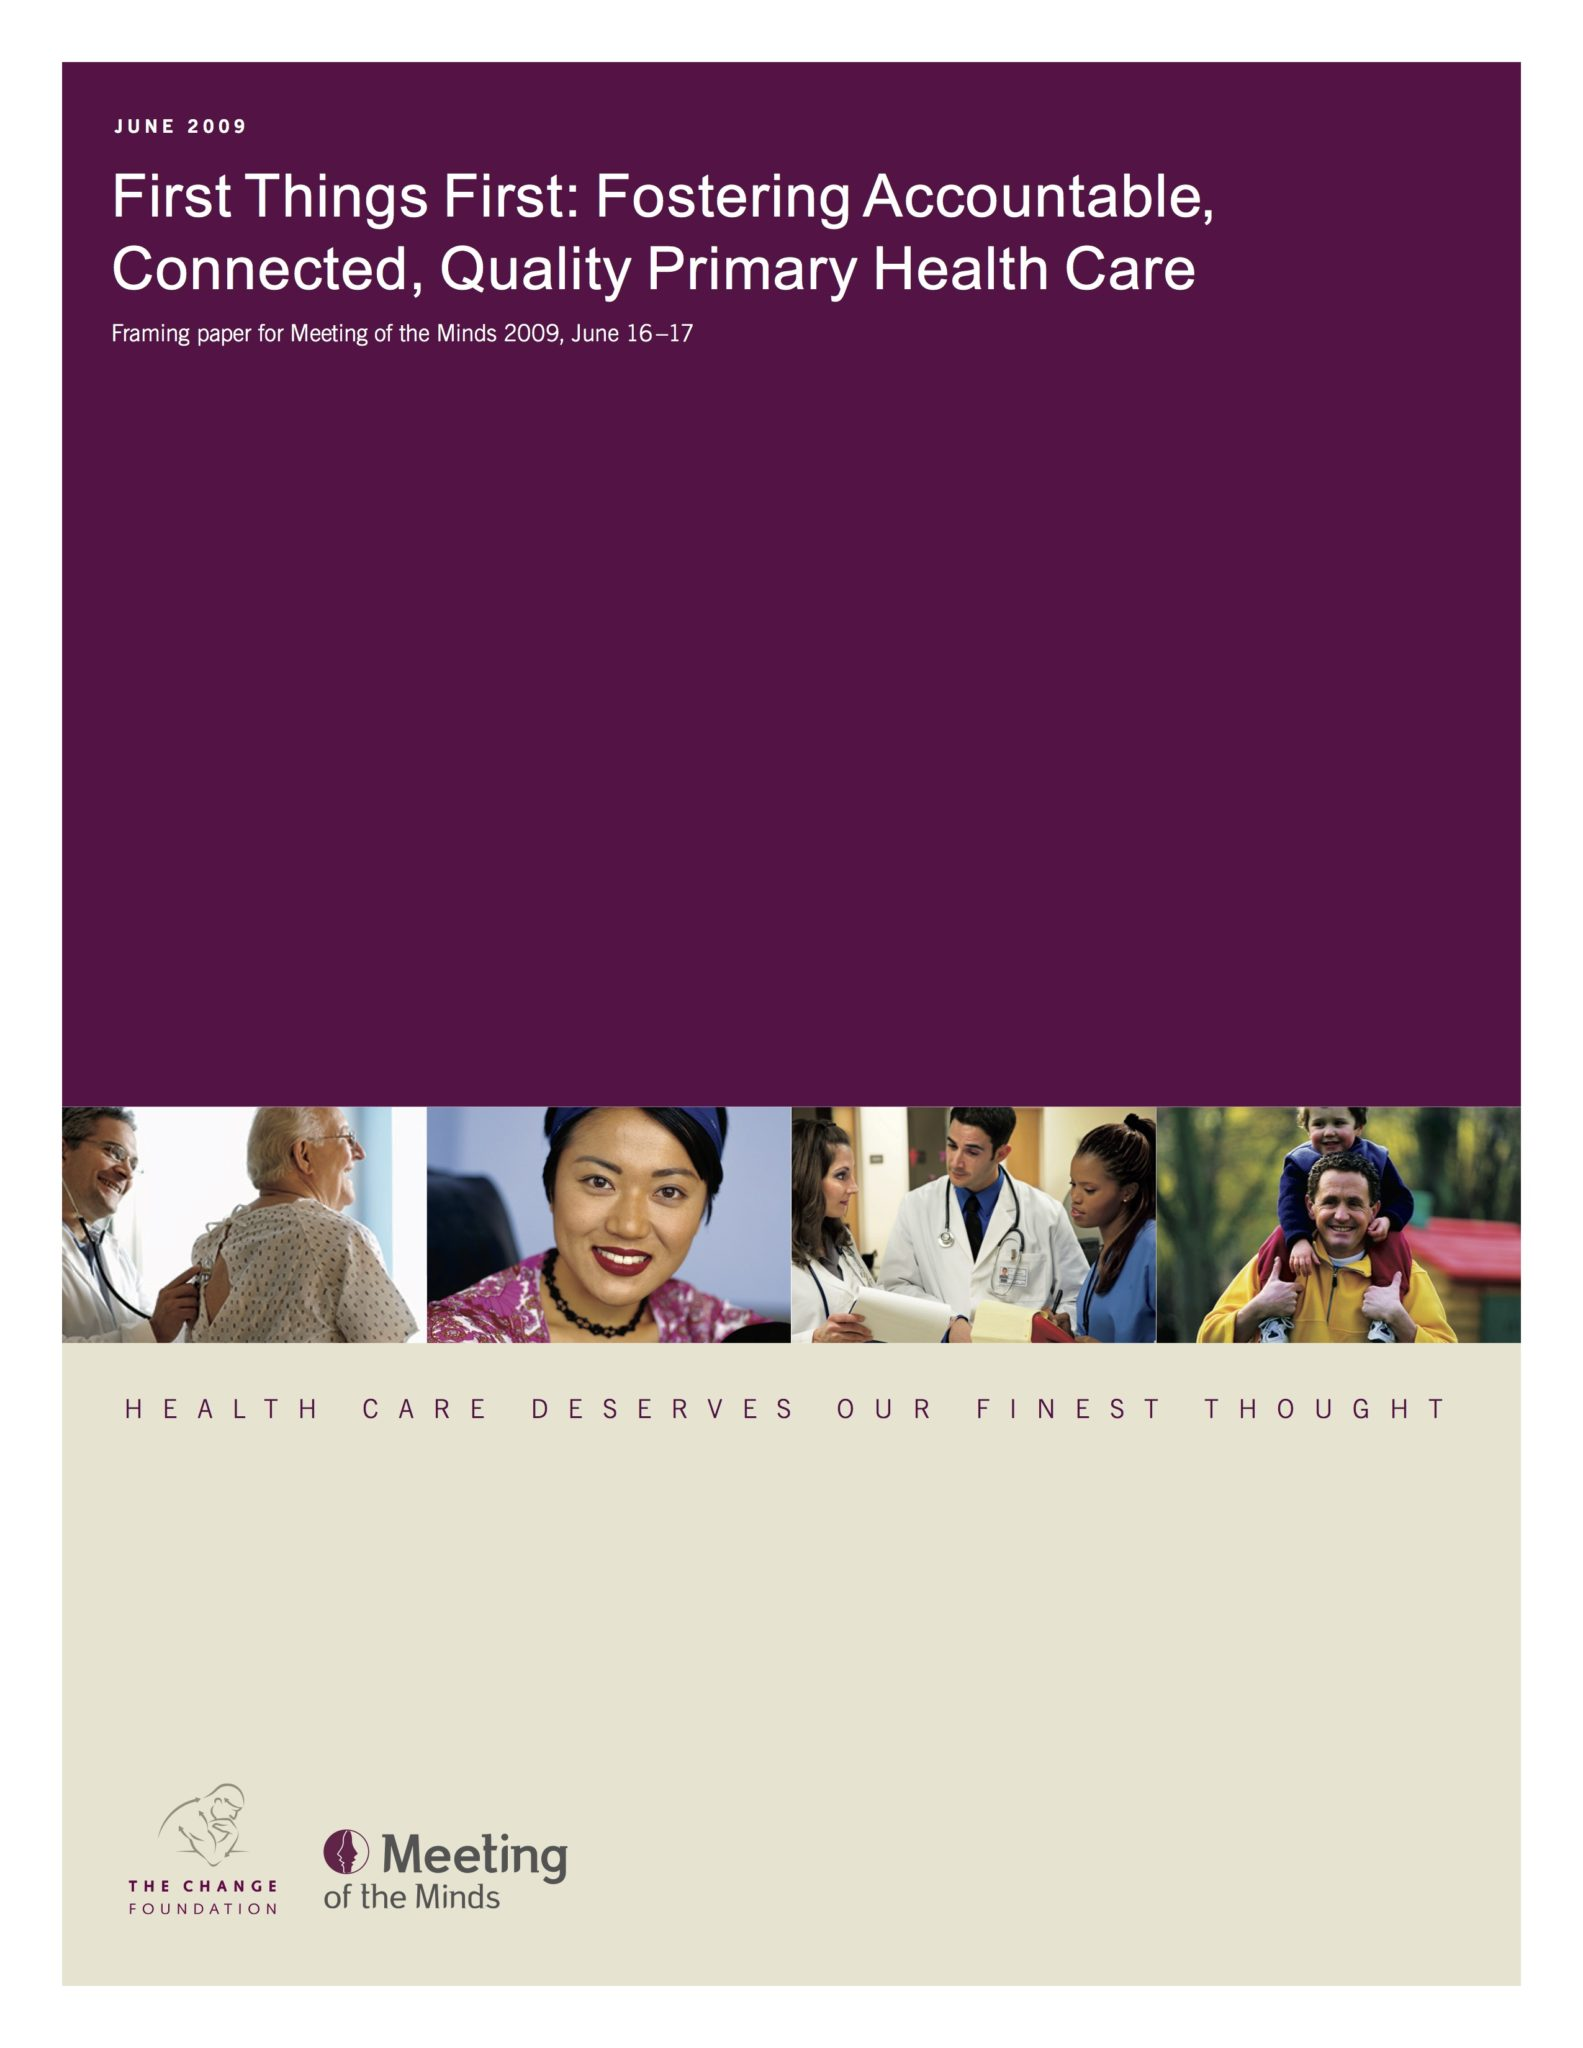 First Things First: Fostering Accountable, Connected, Quality Primary Healthcare